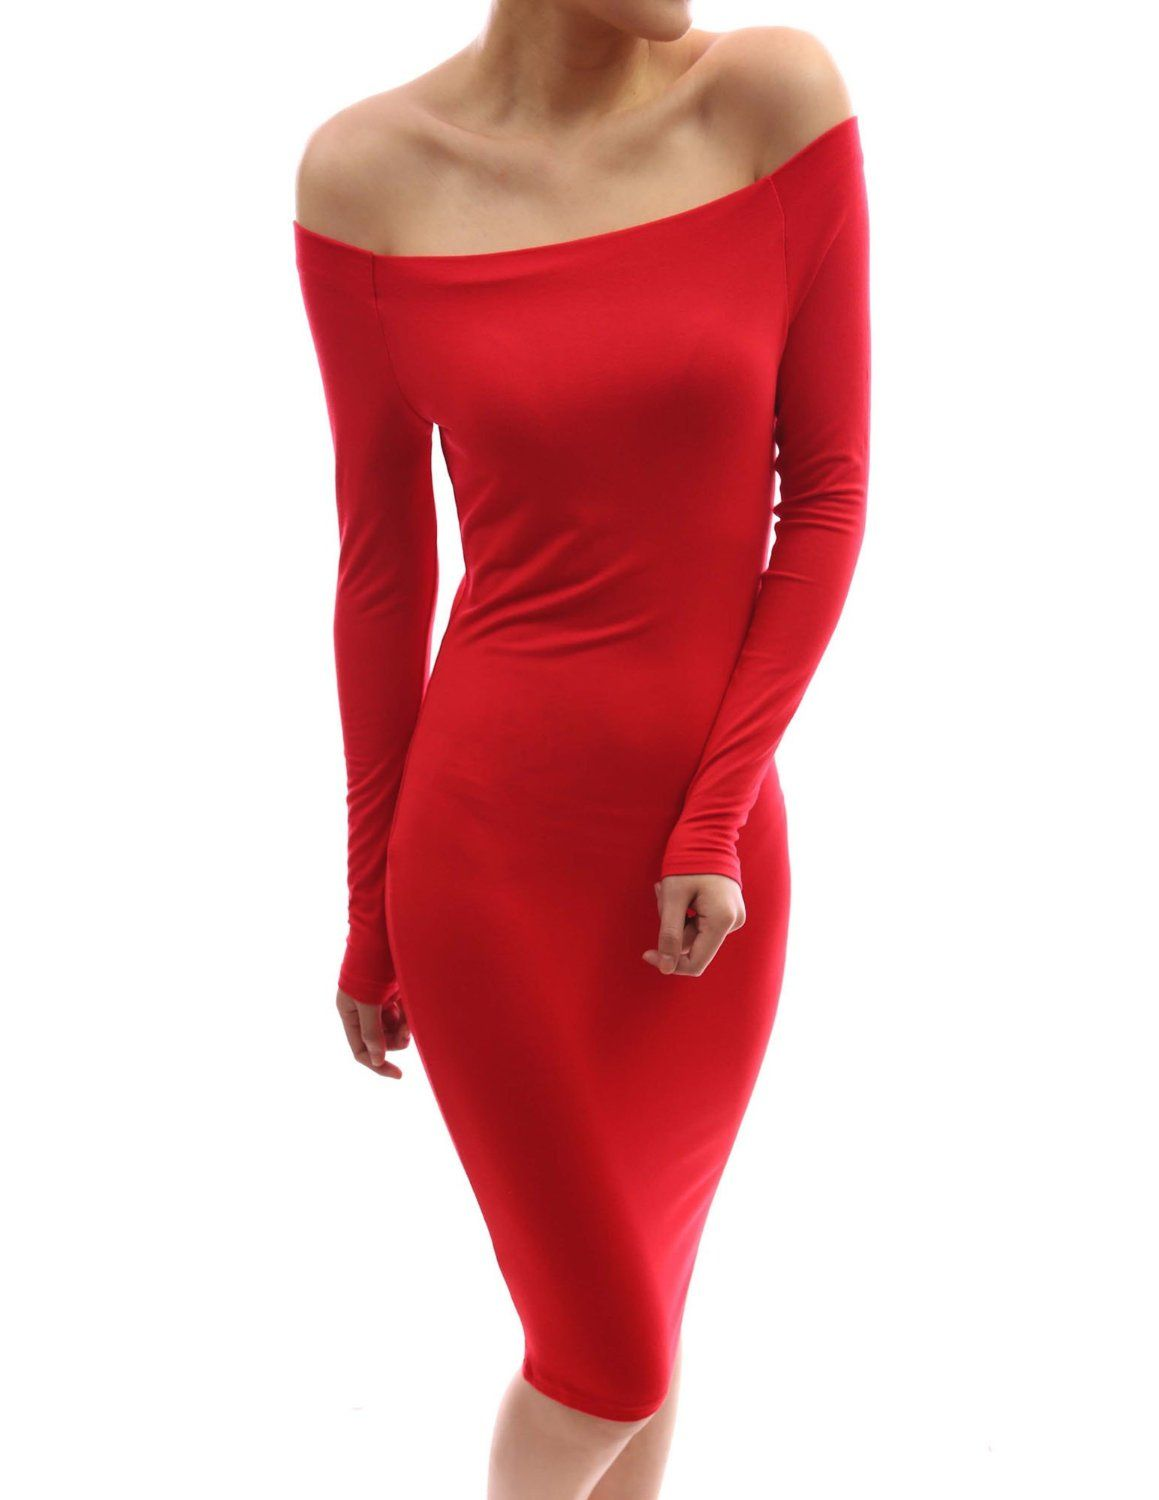 Ana S Red Patty Woman Off The Shoulder Long Sleeved Fitted Dress From Chapter 37 Long Sleeve Fitted Dress Dresses Beautiful Dresses